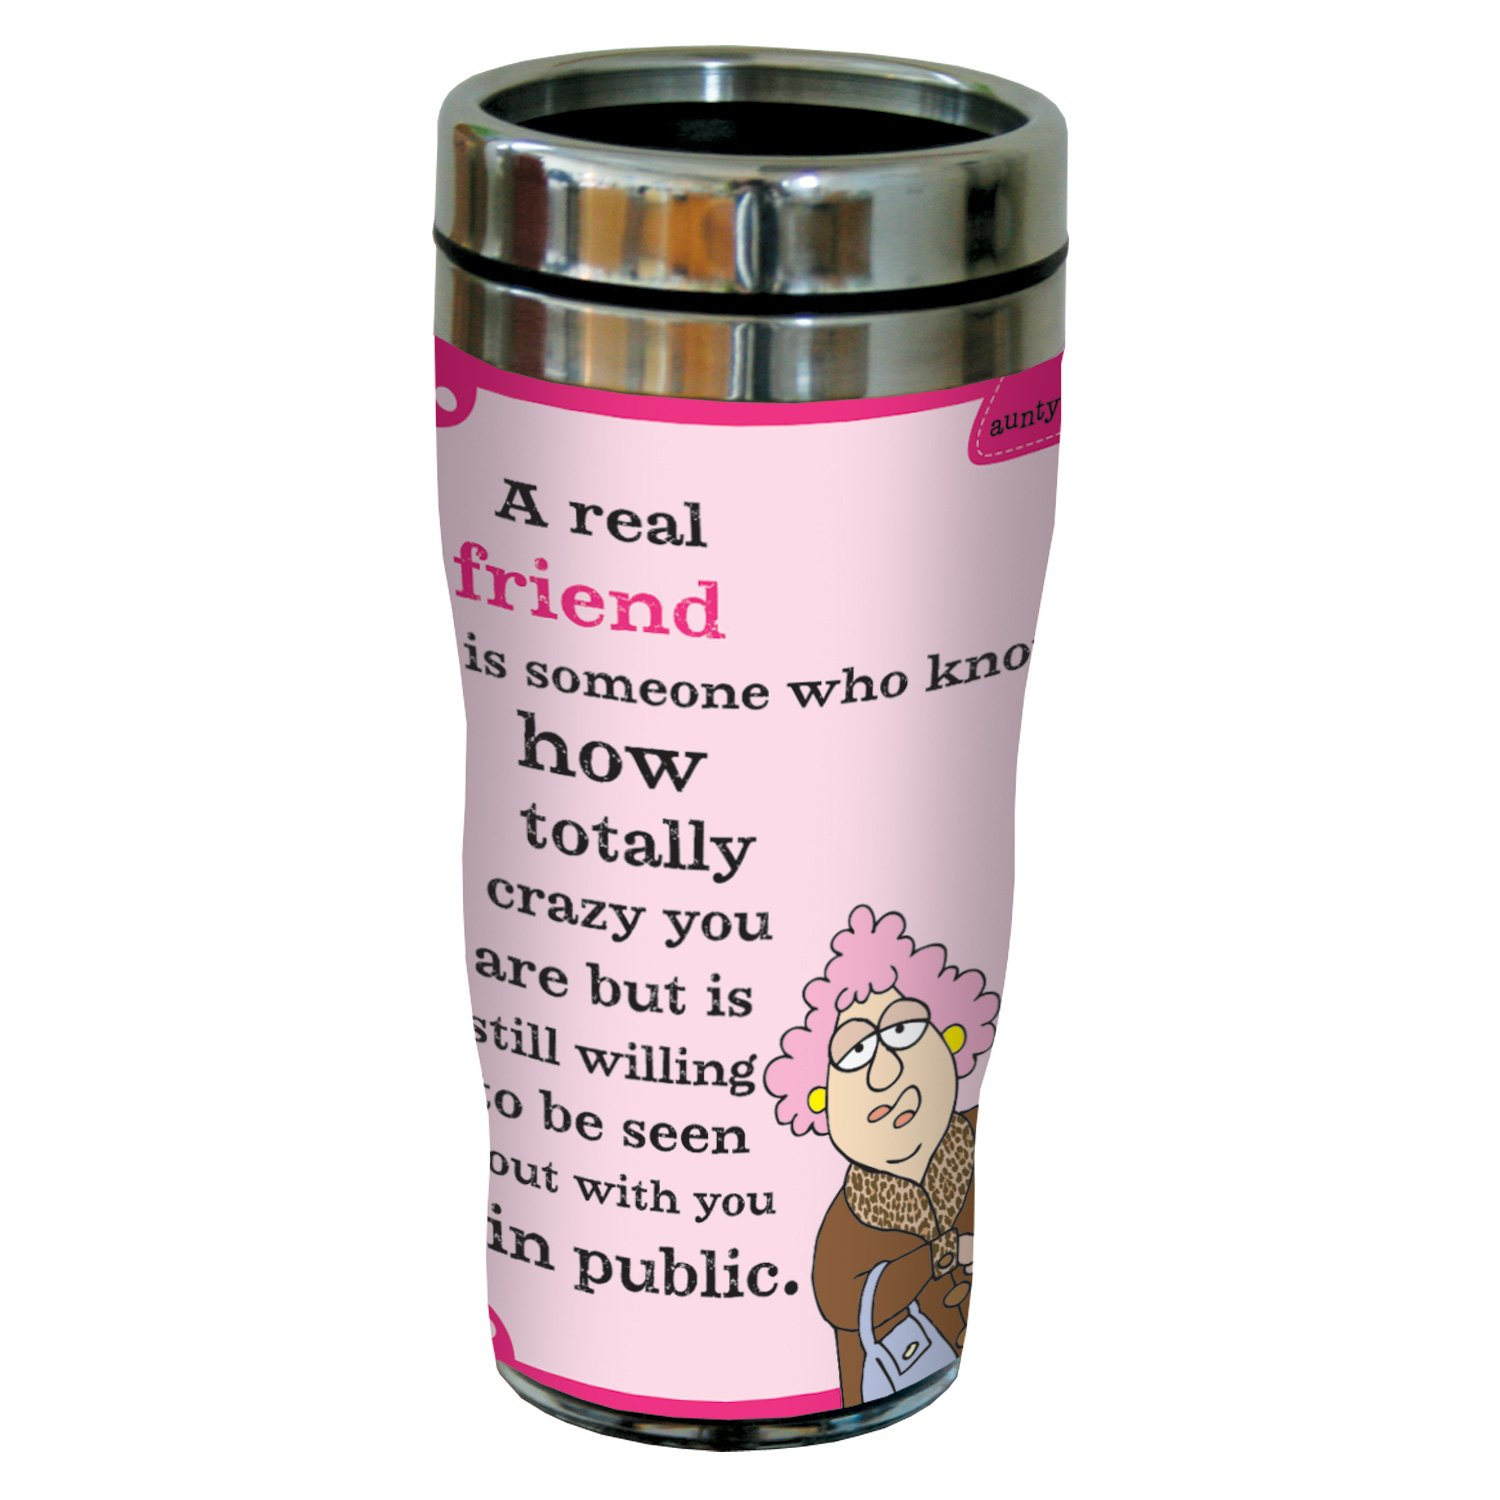 16 Oz Sip N Go Stainless Steel Lined Tumbler Tree Free Tree-Free Greetings sg23829 Hilarious Aunty Acid Real Friends by The Backland Studio Ltd